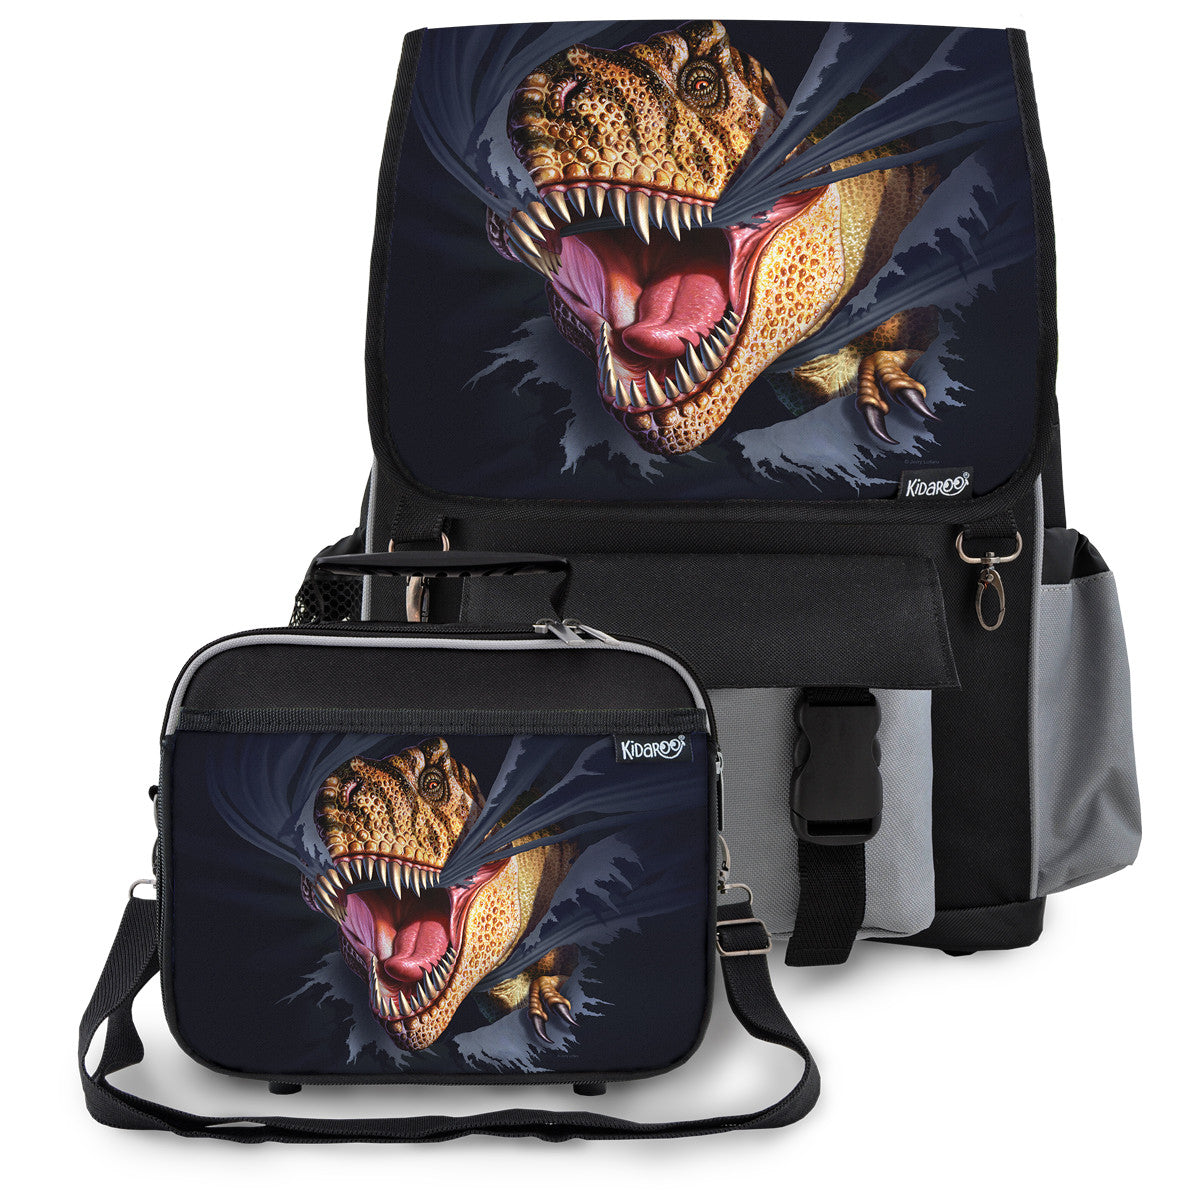 Kidaroo Black Tearing T-Rex Dinosaur School Backpack & Lunchbox Set for Boys, Girls, Kids